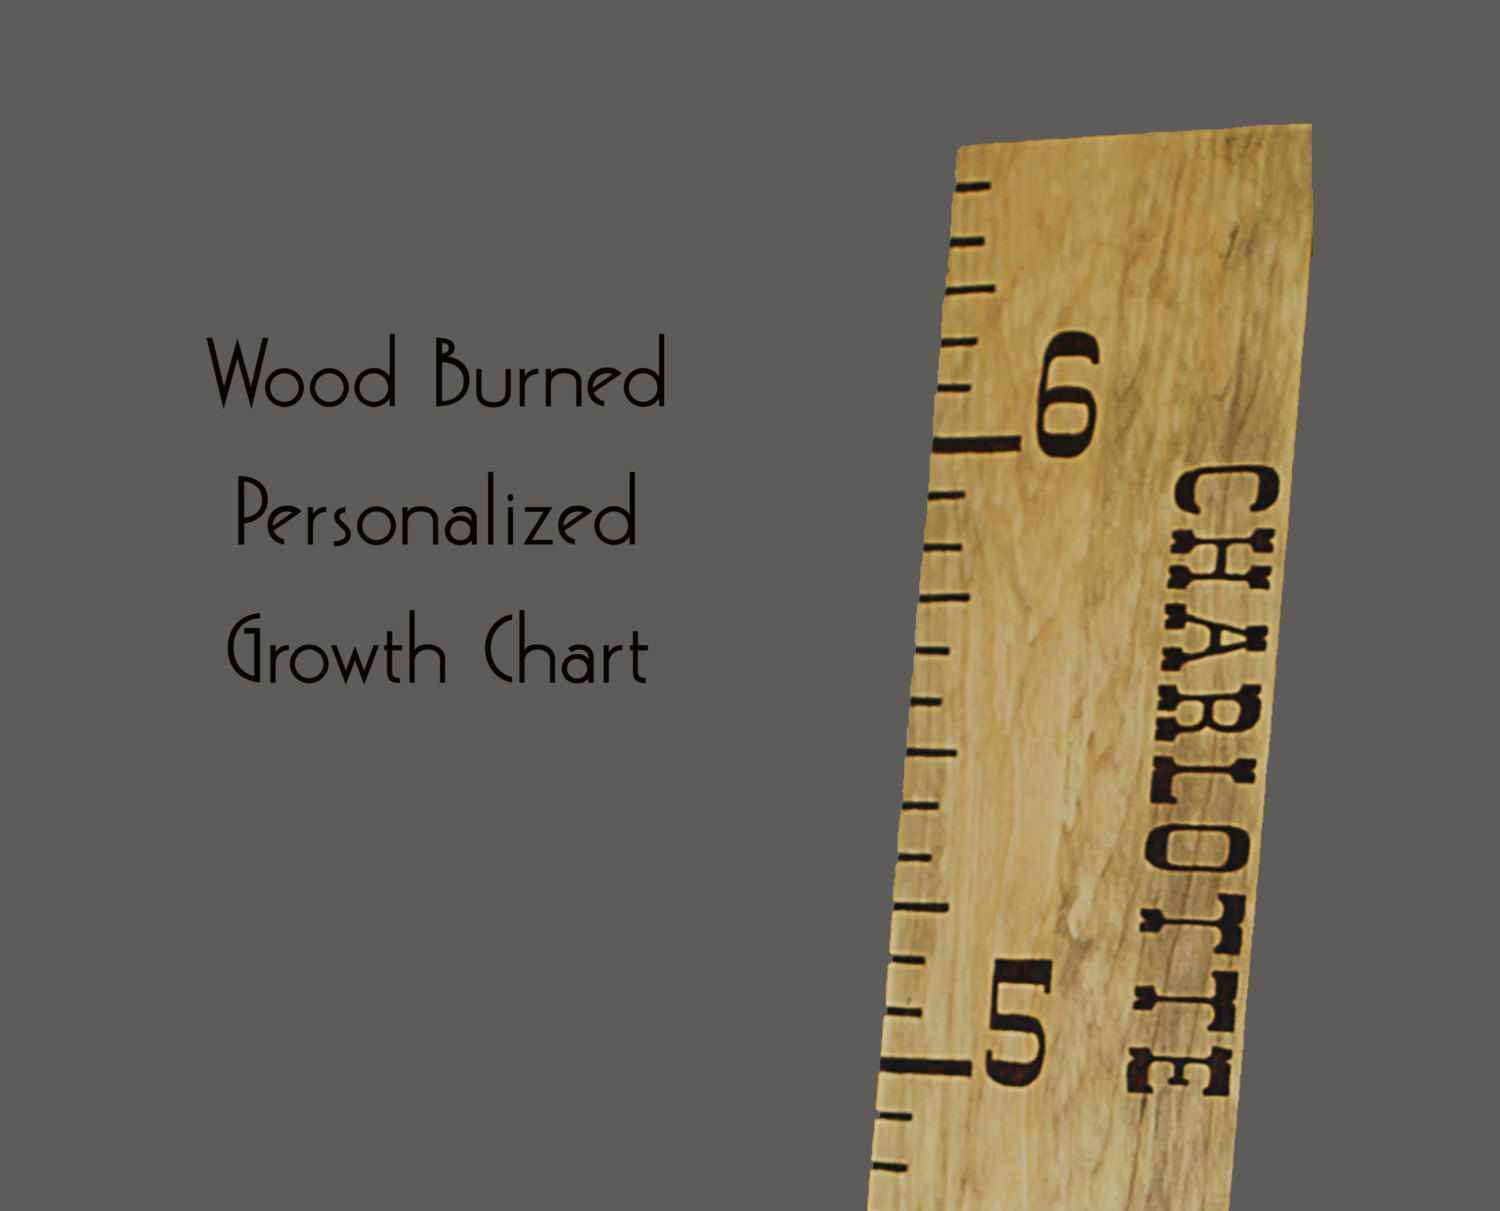 Wooden growth chart personalized wood growth chart engraved wood burned growth chart wooden growth chart personalized ruler child growth ruler nvjuhfo Choice Image